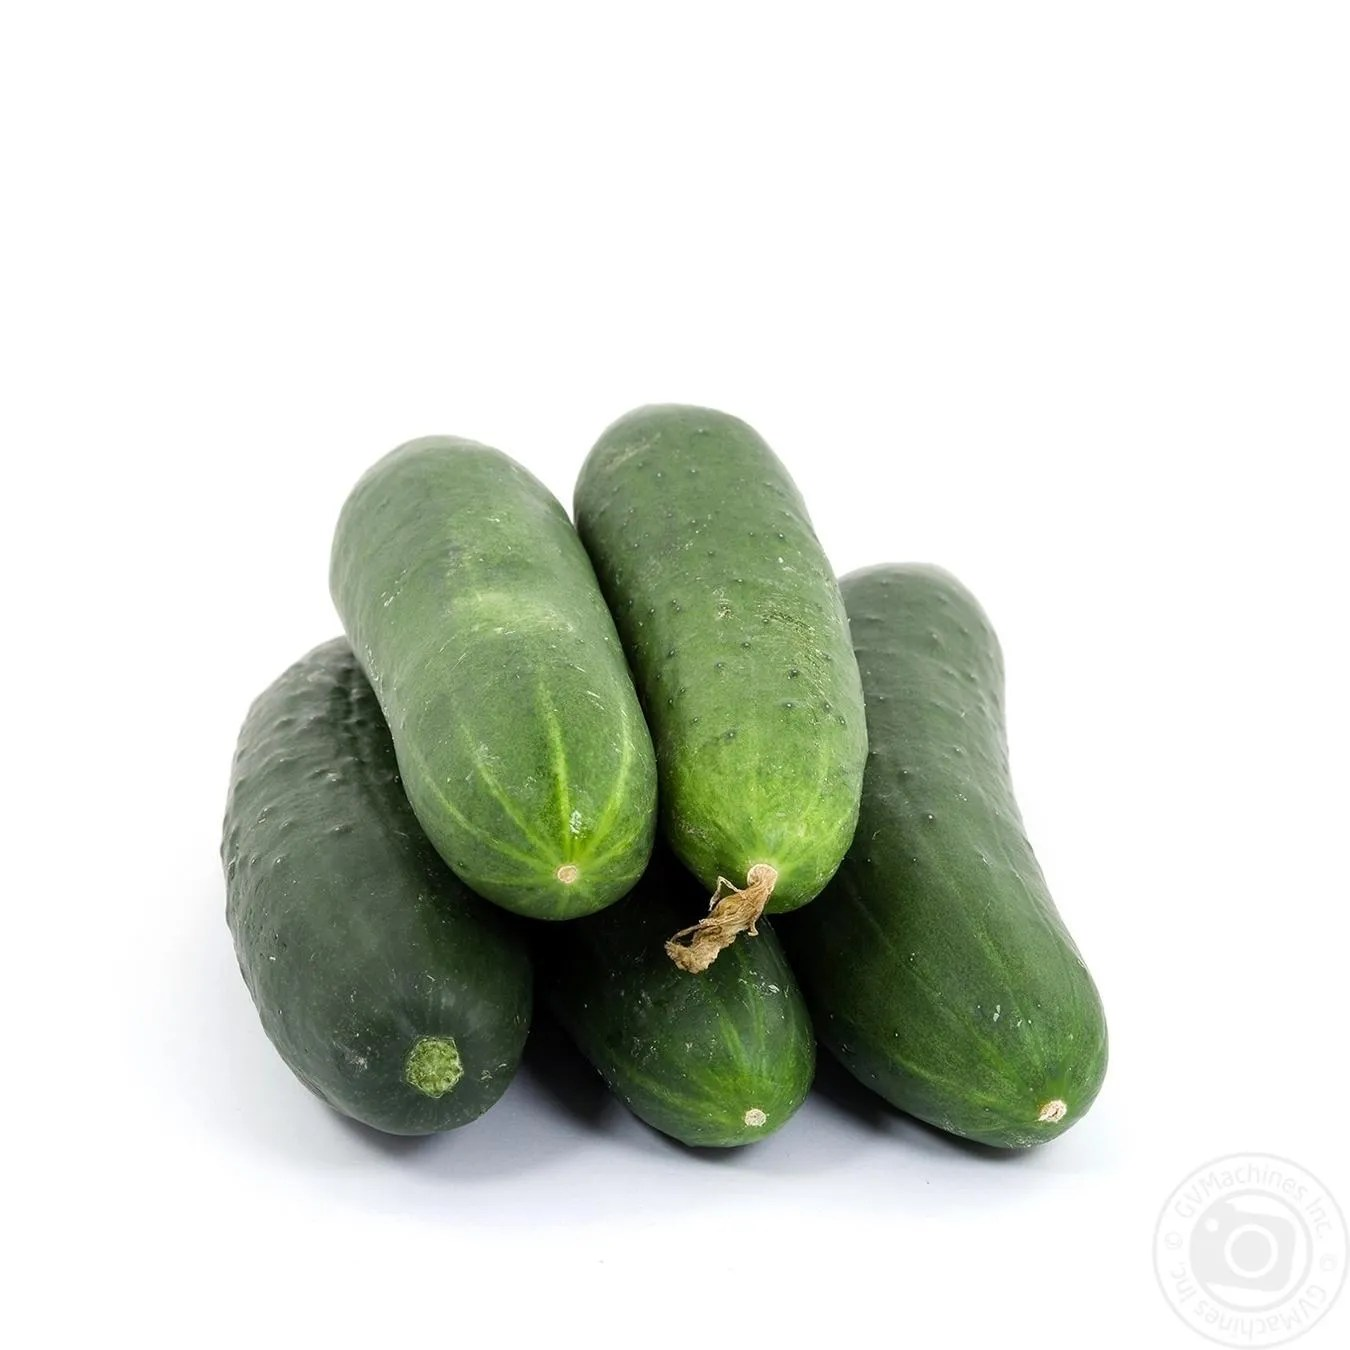 Attractive Vegetables Vegetables How To Store Cucumbers Until Ready To Can How To Store Cucumbers After Harvest Vegetables Cucumber Fresh Vegetables Cucumber Fresh Fruits houzz-03 How To Store Cucumbers